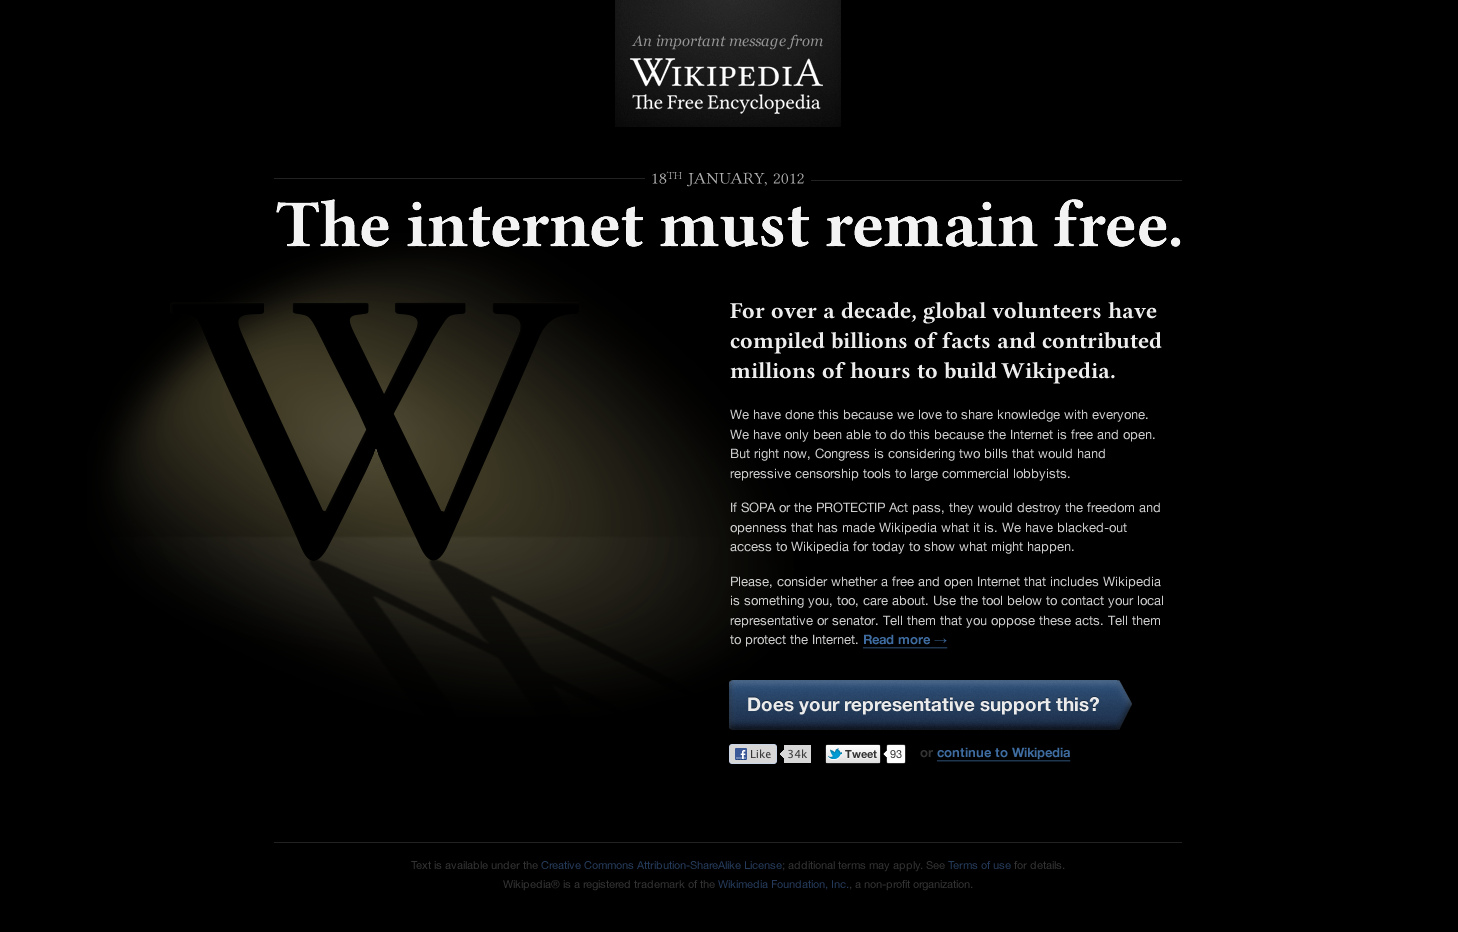 wikipedia is against internet censorship, wikipedia is the best library in the world